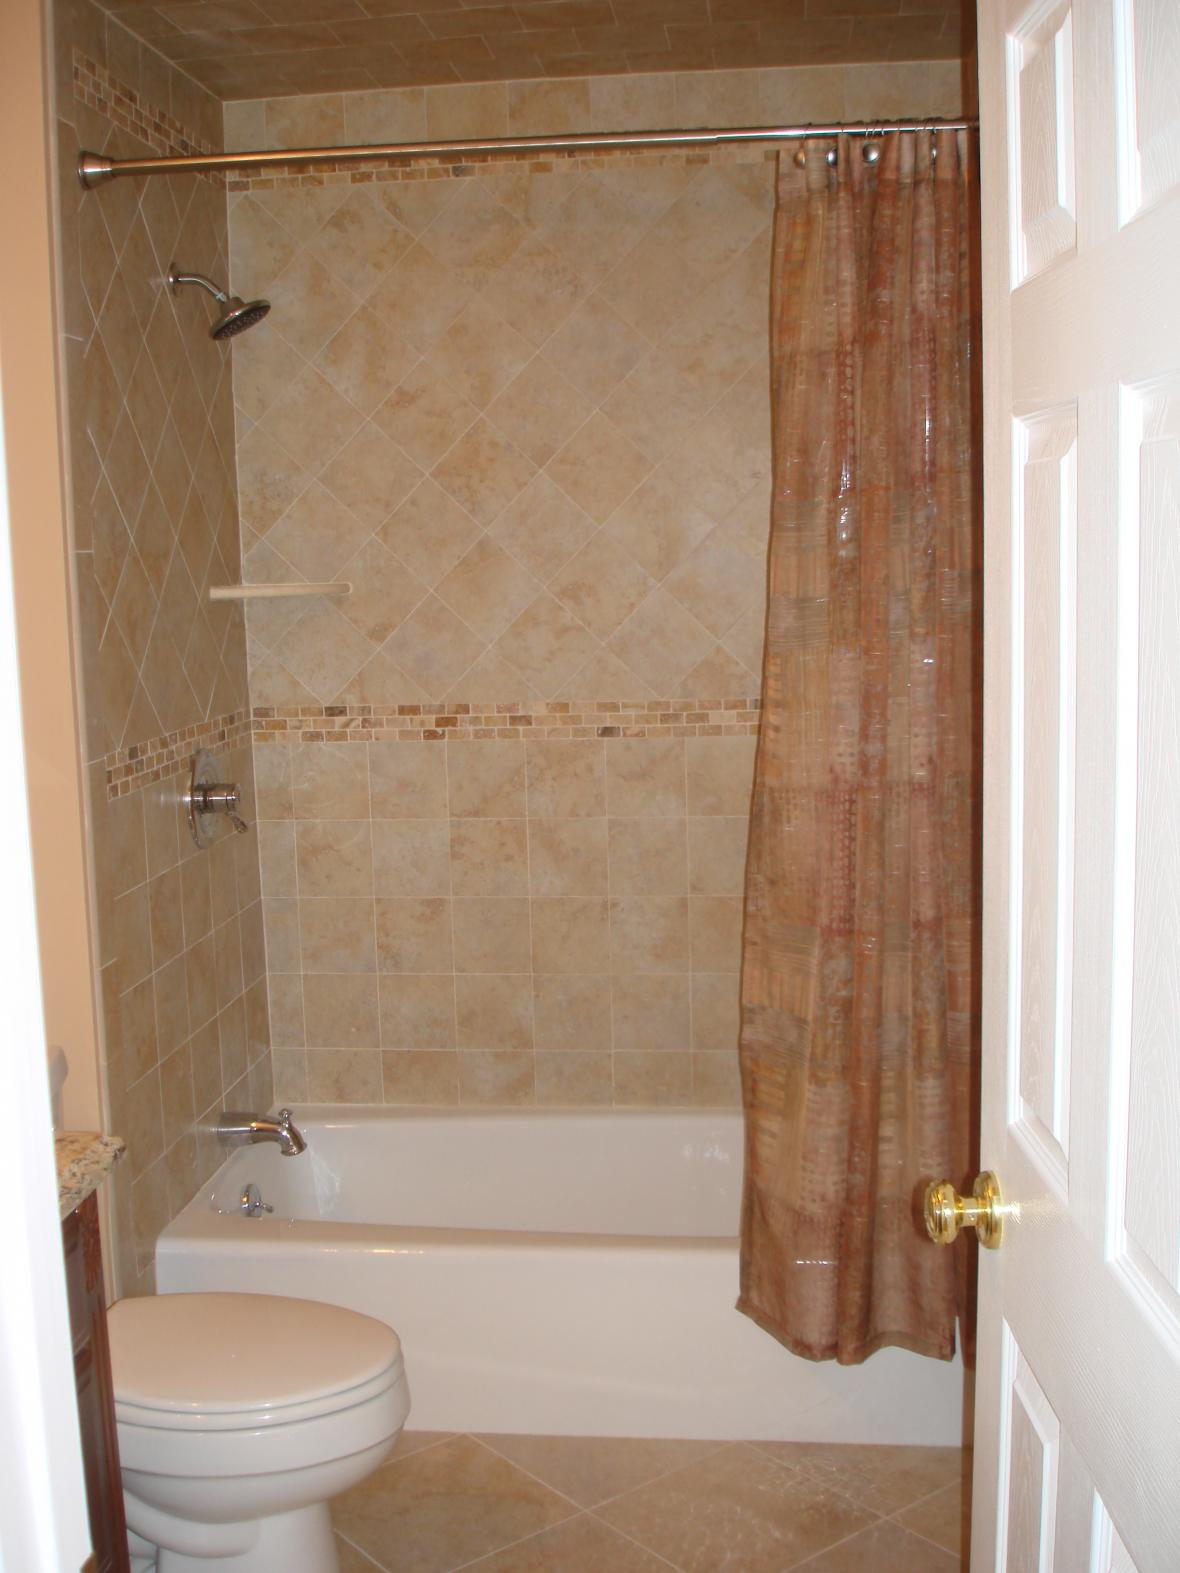 Best tile for bathroom large and beautiful photos photo to select best tile for bathroom - Design ideas small bathrooms efficiency comfortversions ...